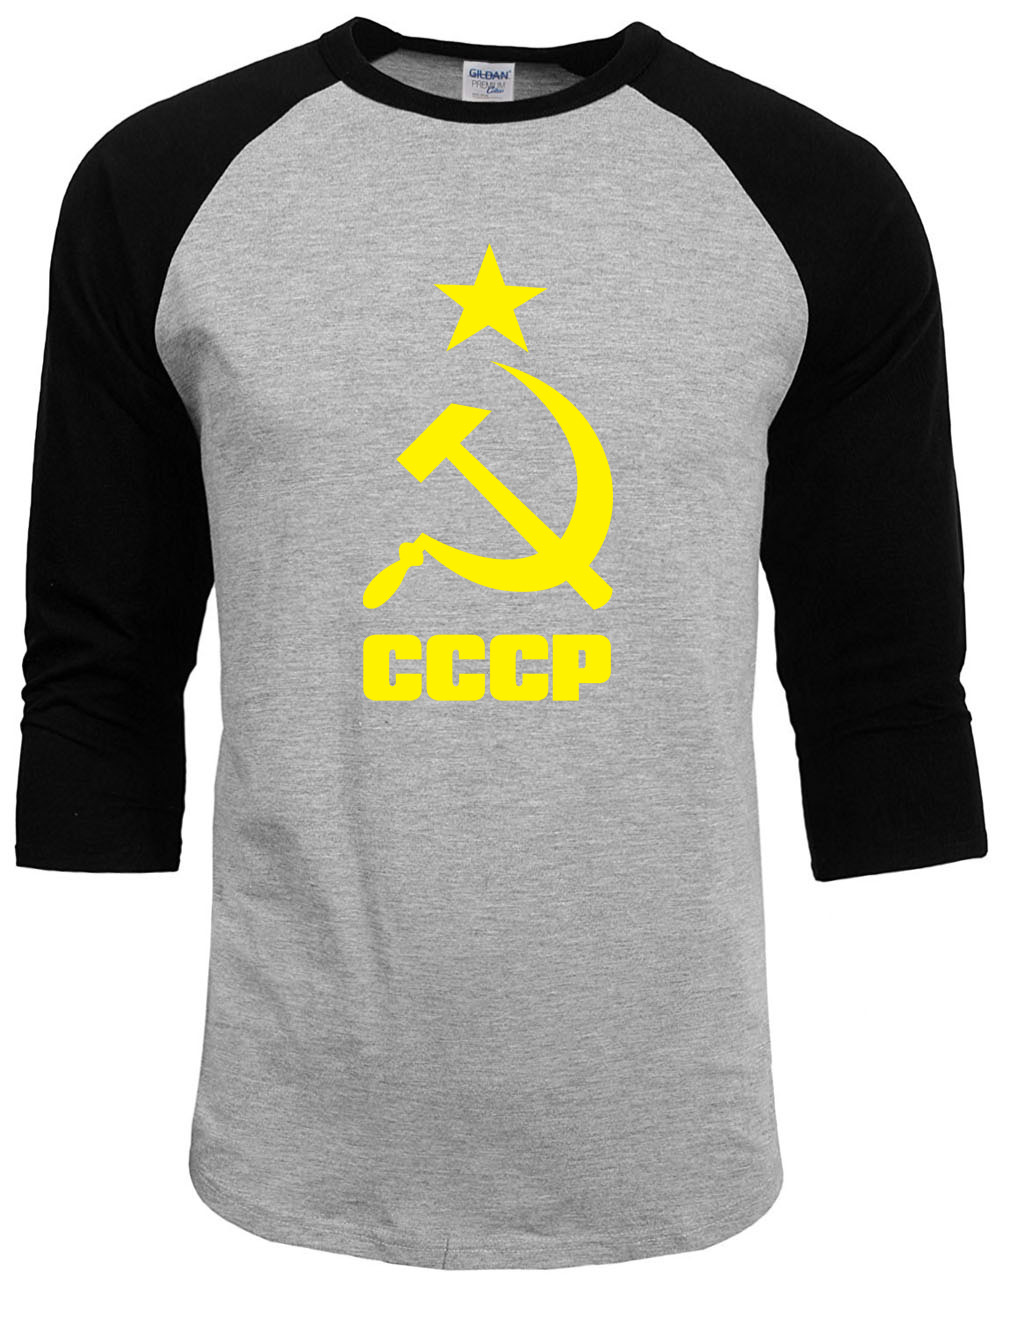 Homme T Shirts Hommes URSS Union Soviétique KGB Homme T-shirt Raglan manches Streetwear Drôle T-shirts Streetwear Hipster O Cou Tops Mma pp